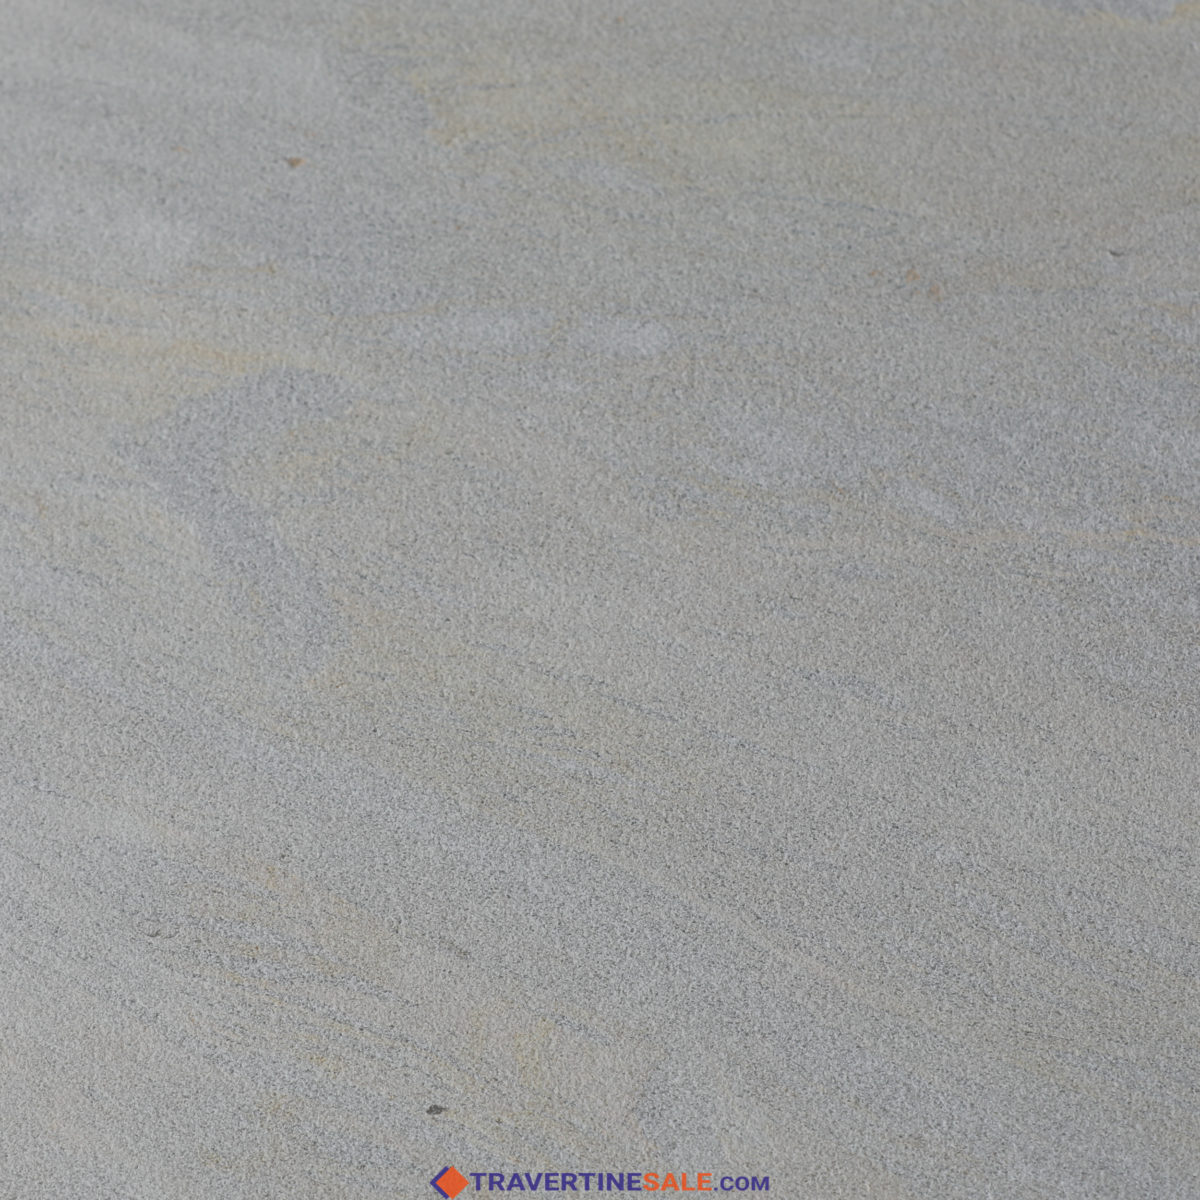 sandblasted ice white gold marble paver surface with white background and gold parts